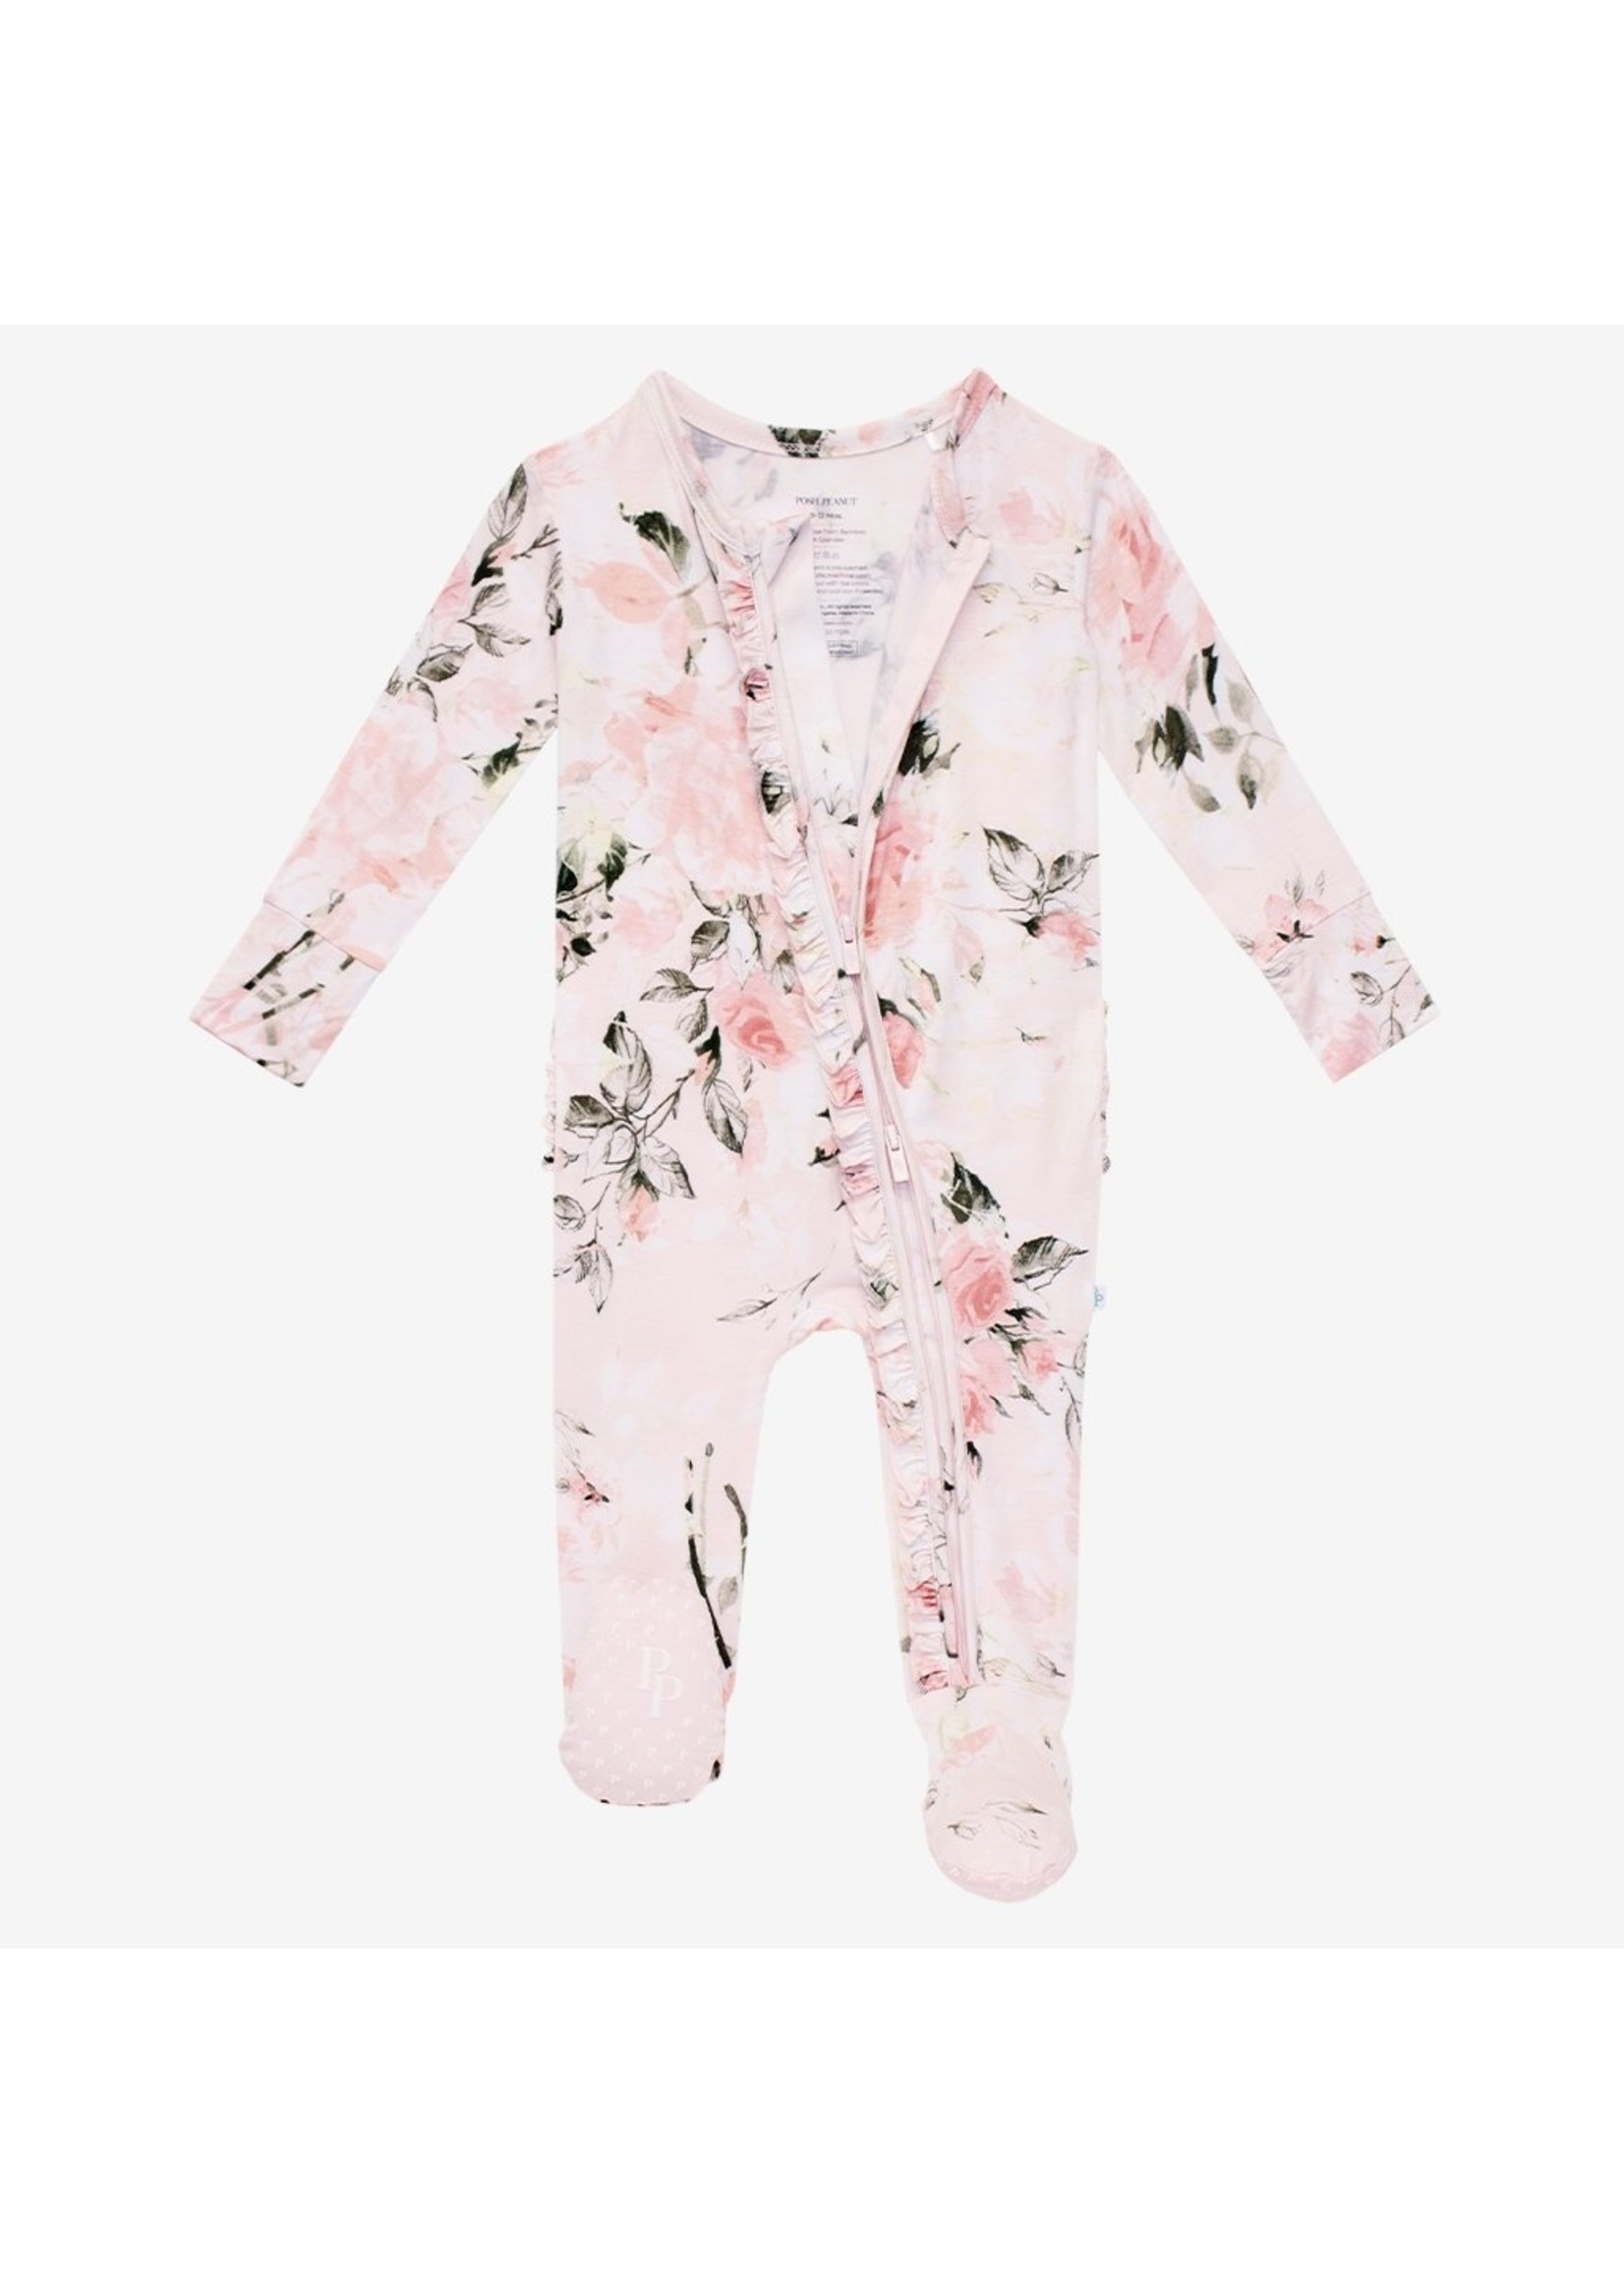 posh peanut Vintage Pink Rose - Footie Ruffled Zippered One Piece